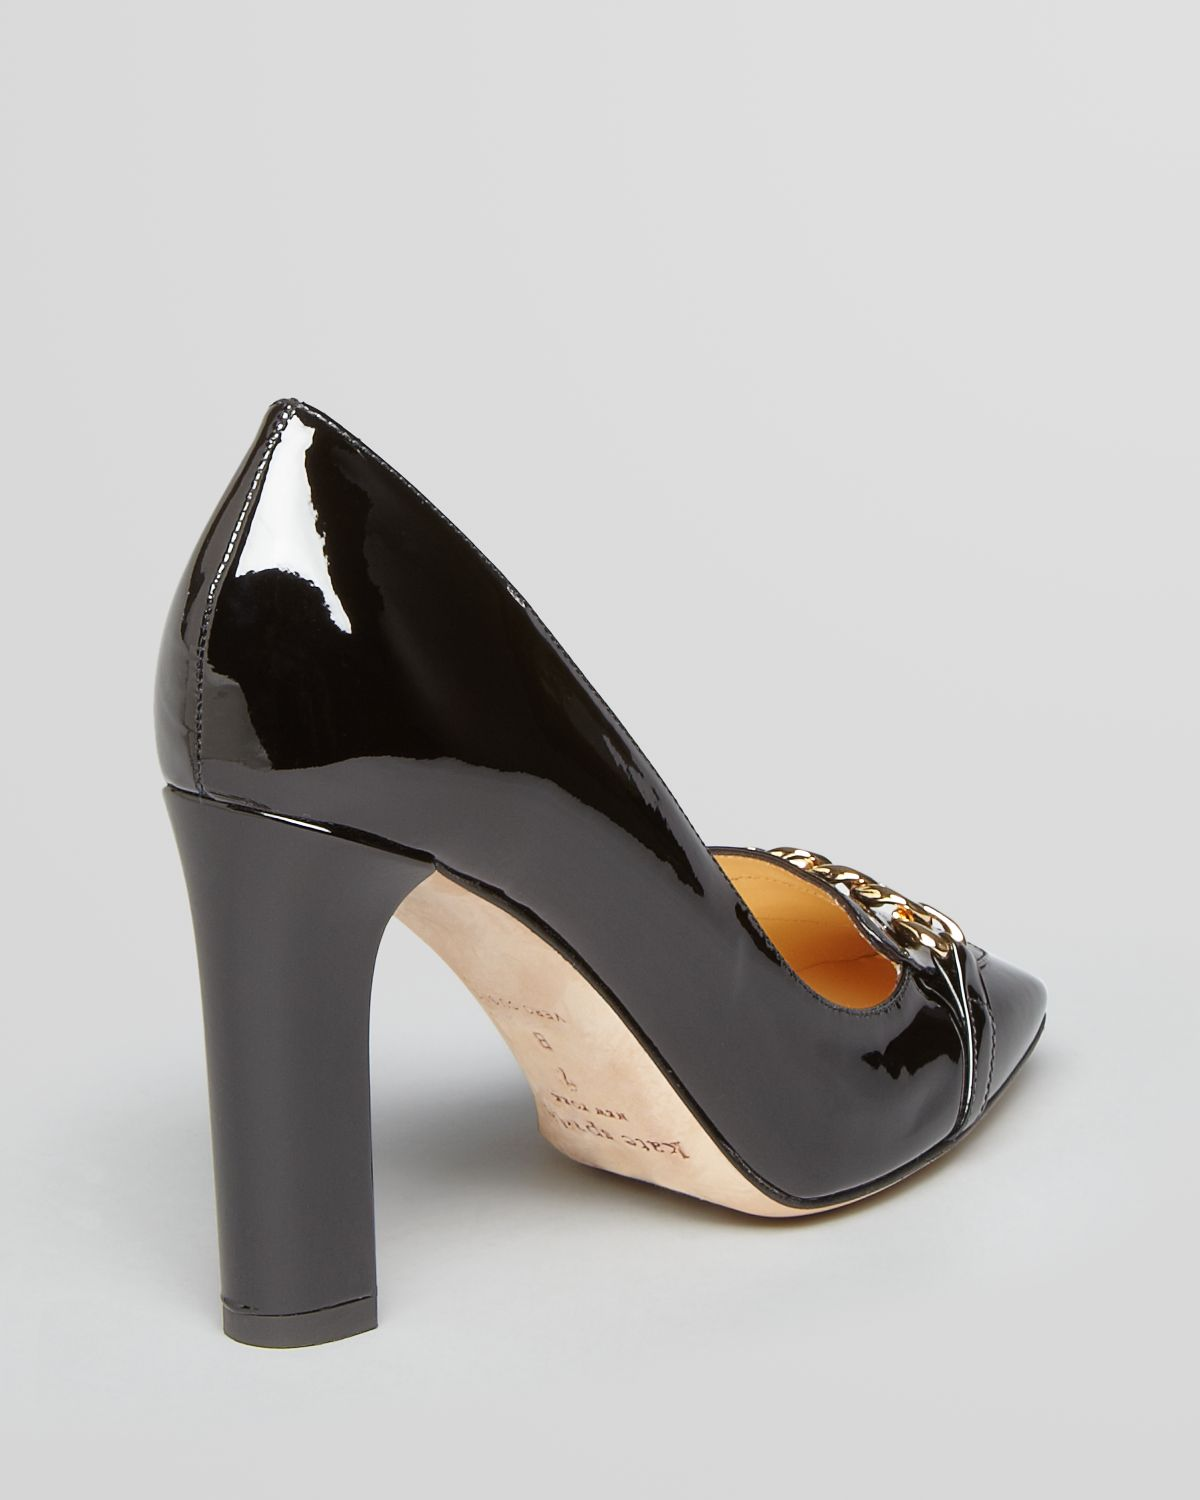 Kate Spade New York Square Toe Pumps Hattie High Heel In